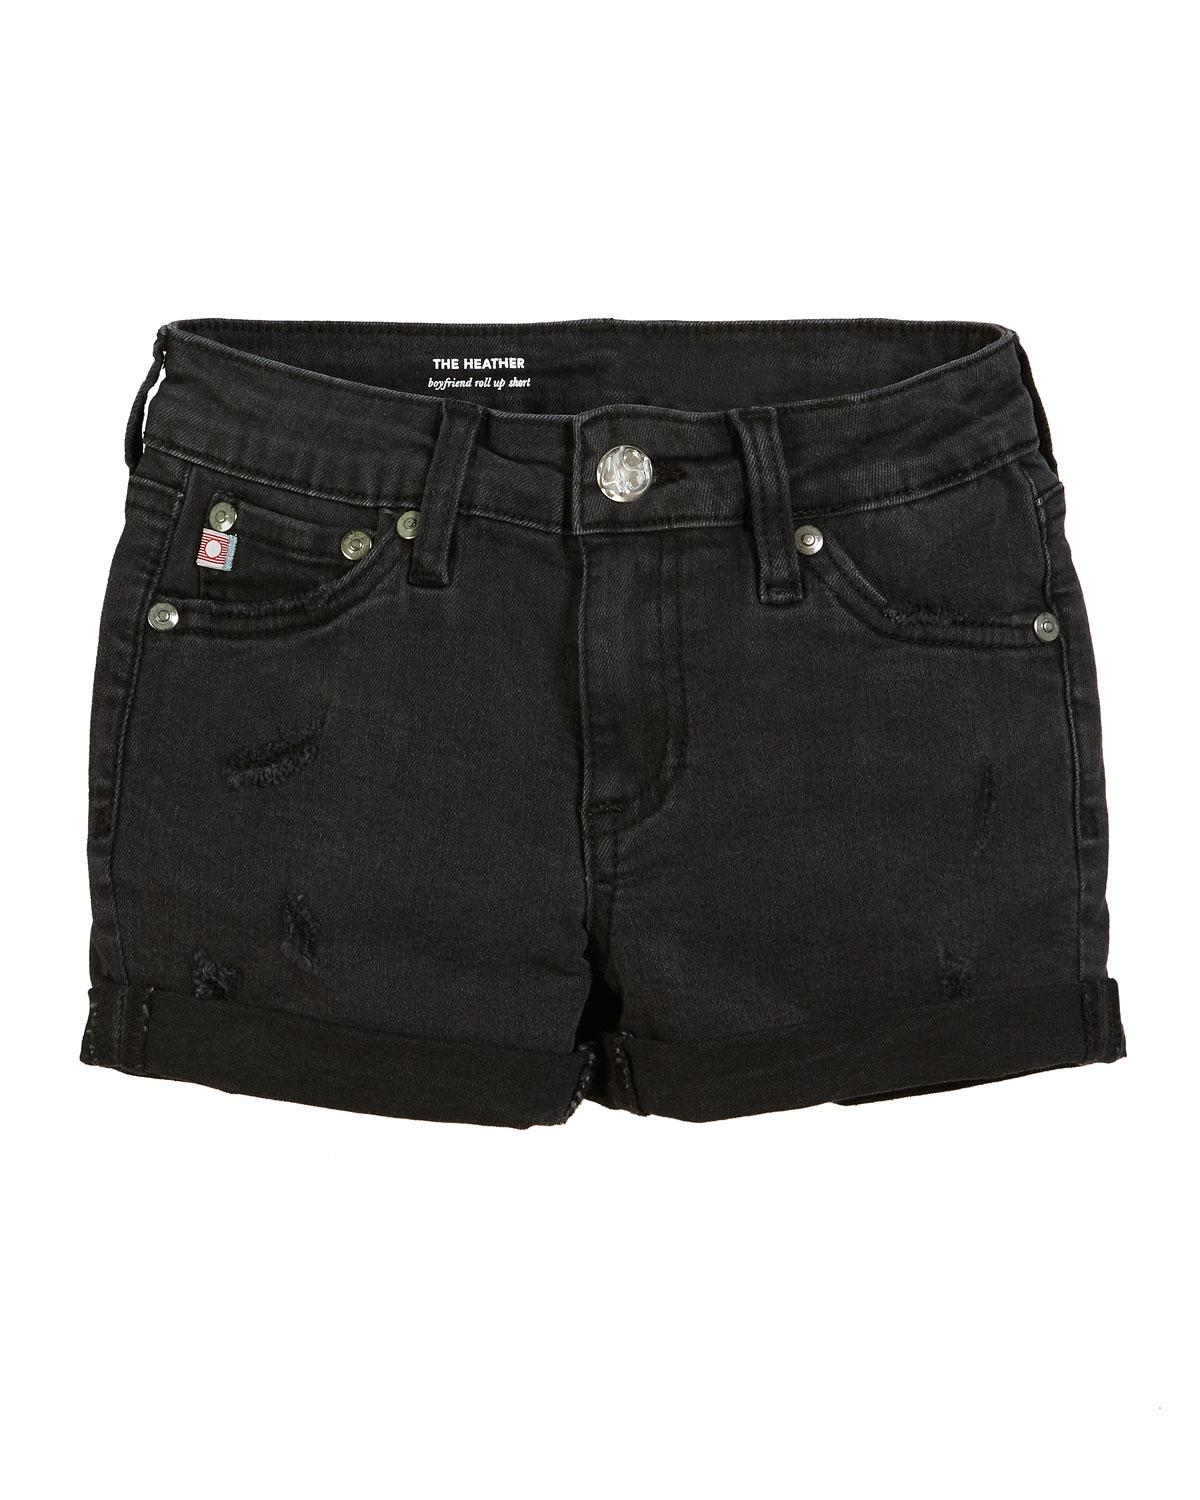 4c45cdc2d0dff Lyst - Ag Jeans Heather Distressed Rolled-cuff Shorts in Black